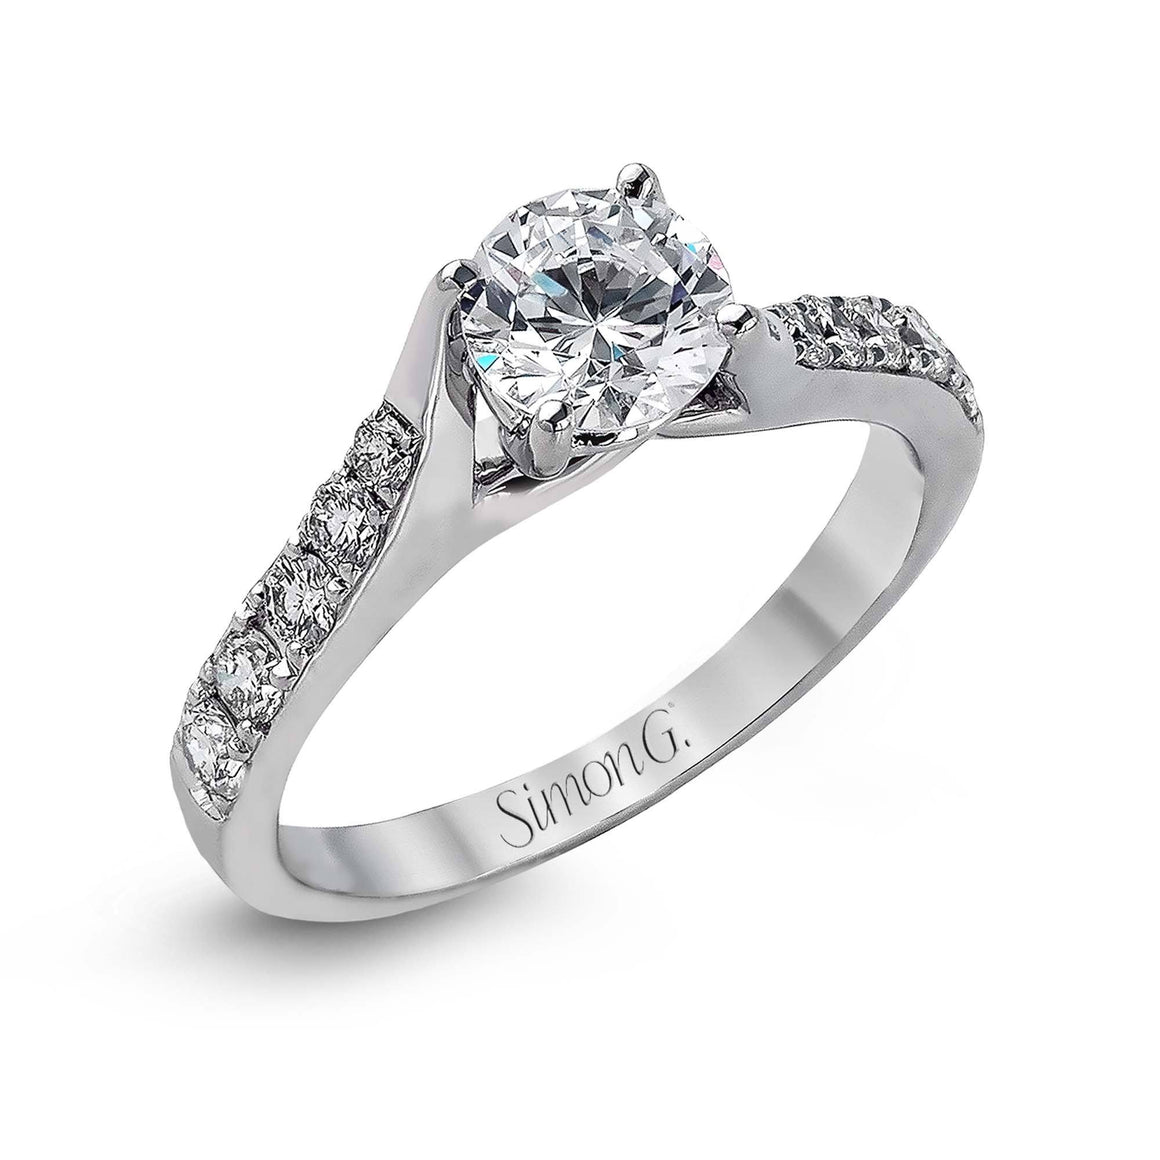 Simon G -MR238, Engagement Ring, Simon G - Birmingham Jewelry